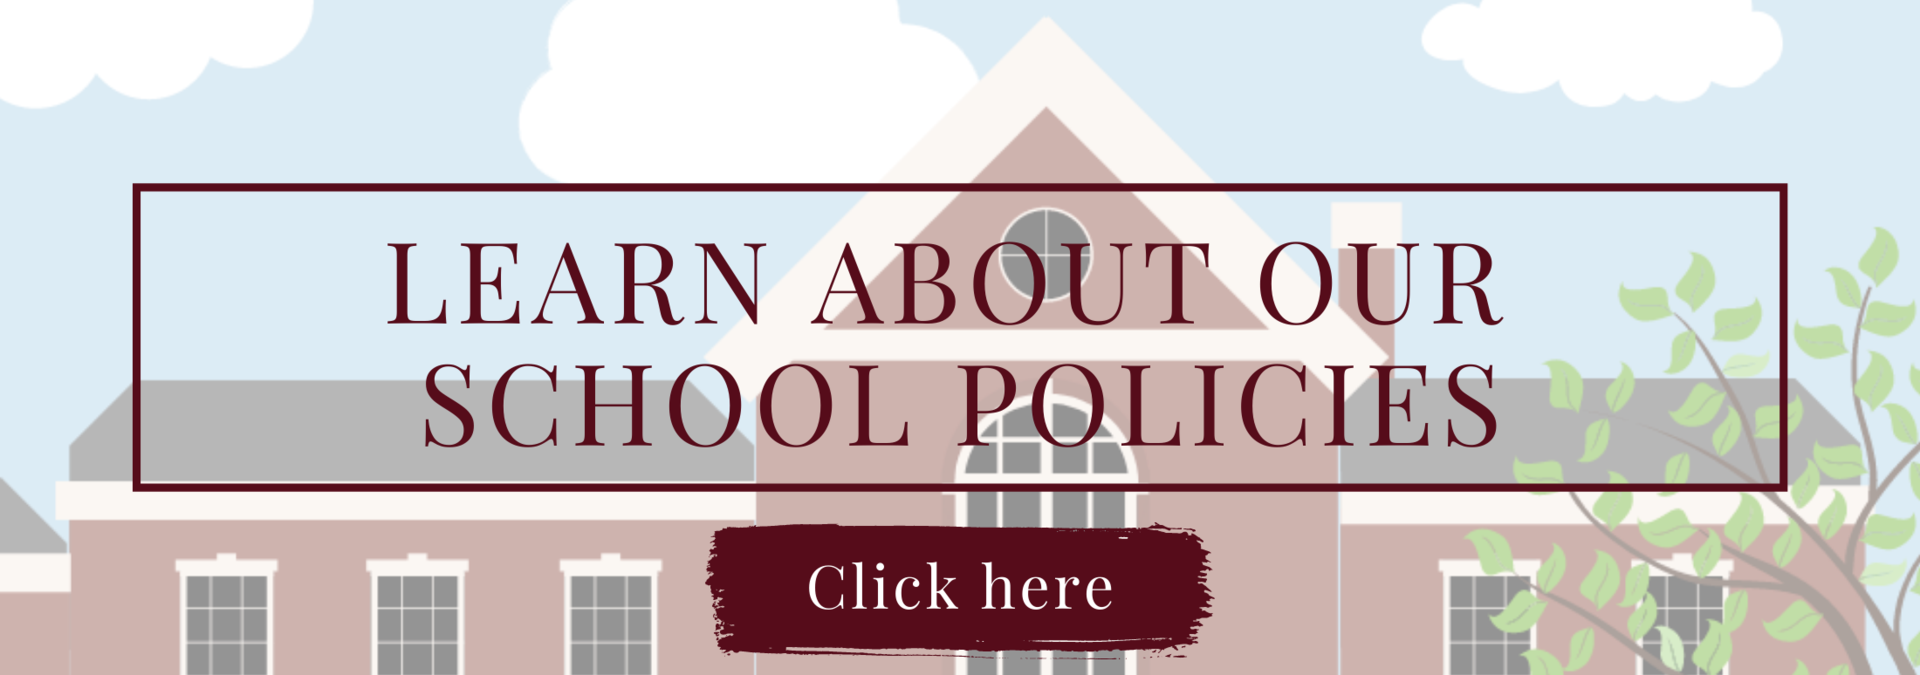 Learn about our school policies